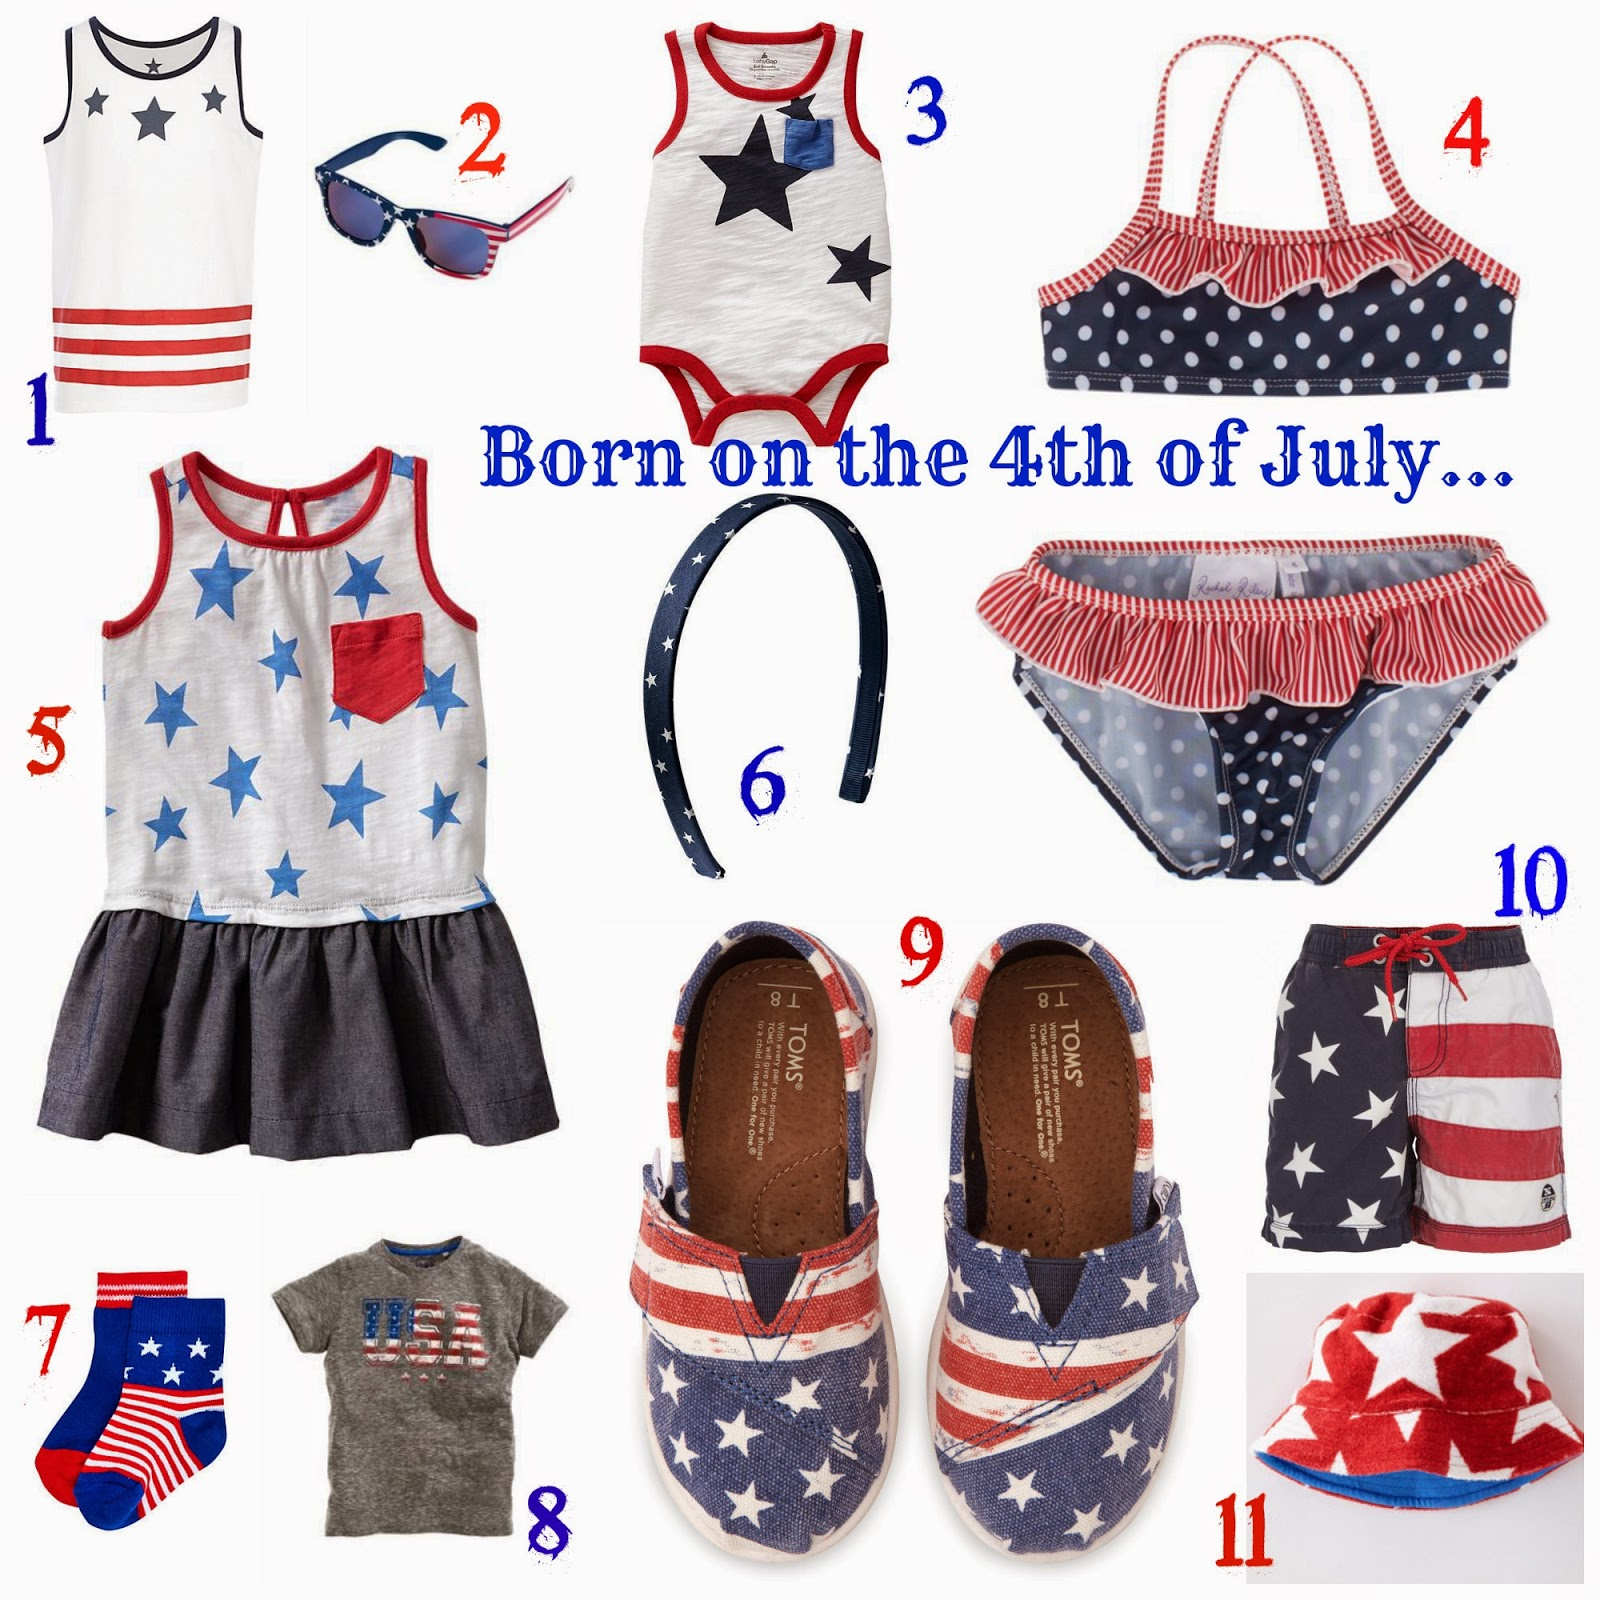 V. I. BUYS, boys fashion, girls fashion, fashion, new buys, new trends, Americana, stars and stripes, July the 4th, Independence Day, American, mamasVIb, next, gap, toms, clothes, alex and alexa, river island, river island mini, rachel riley, swimwear, kids clothes